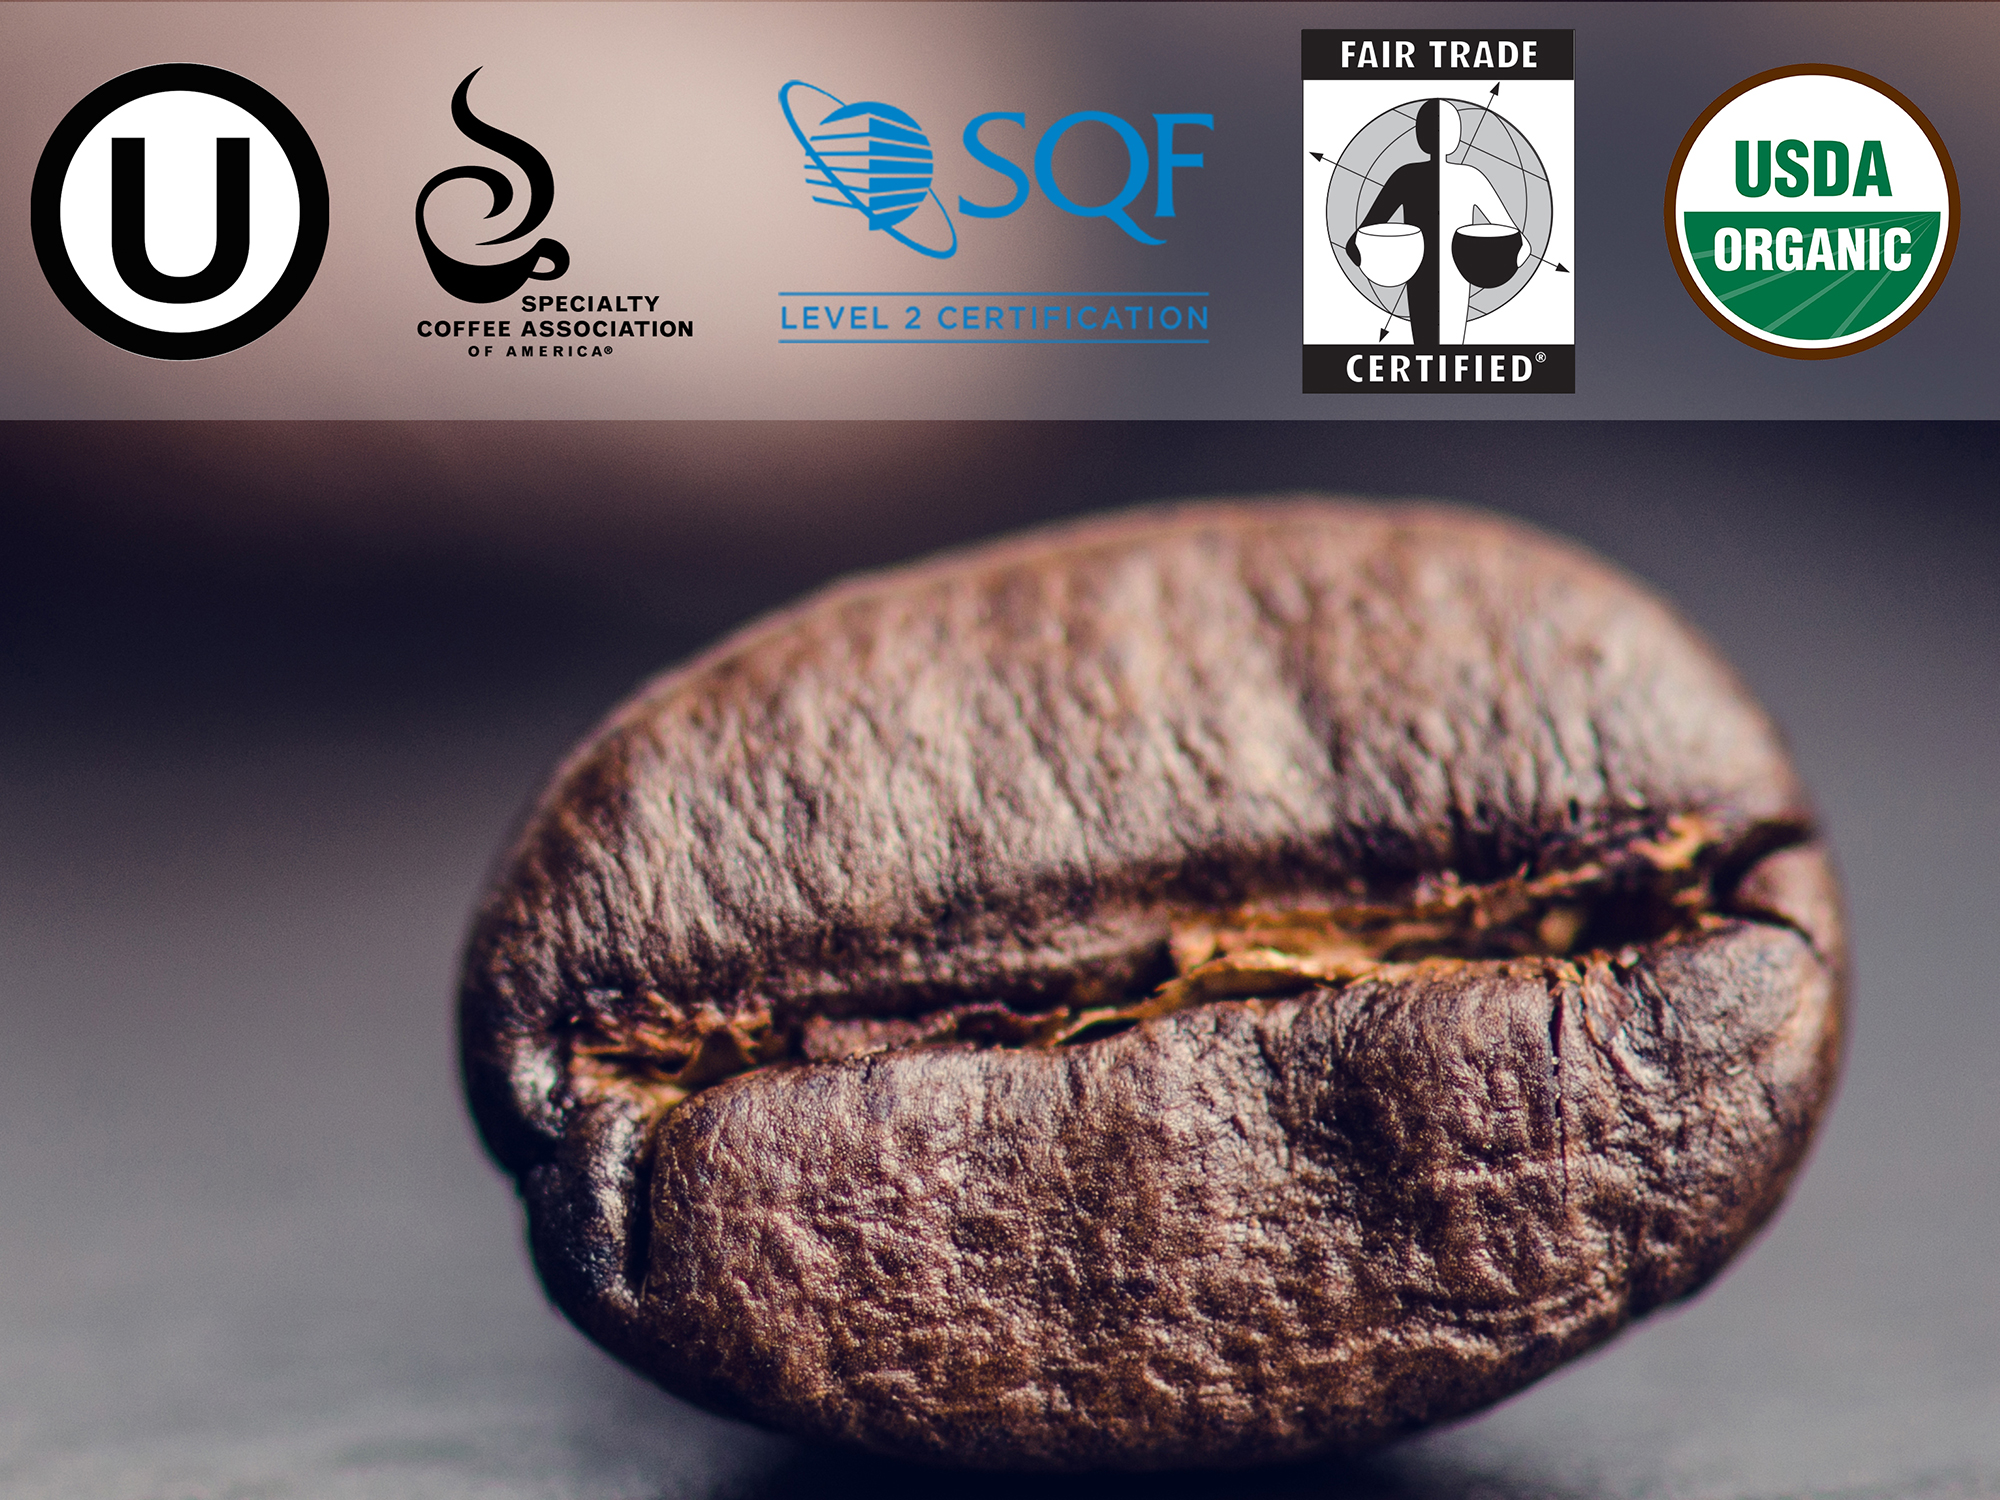 Certifications - Copper Moon is a Safe Quality Food Level 2 Supplier. We undergo a rigorous annual audit whereby we comply with a long list of regulatory initiatives. We have consistently achieved high ratings year over year.In addition to our quality food certifications, we offer these additional certifications on all or some of our coffees, as shown above.